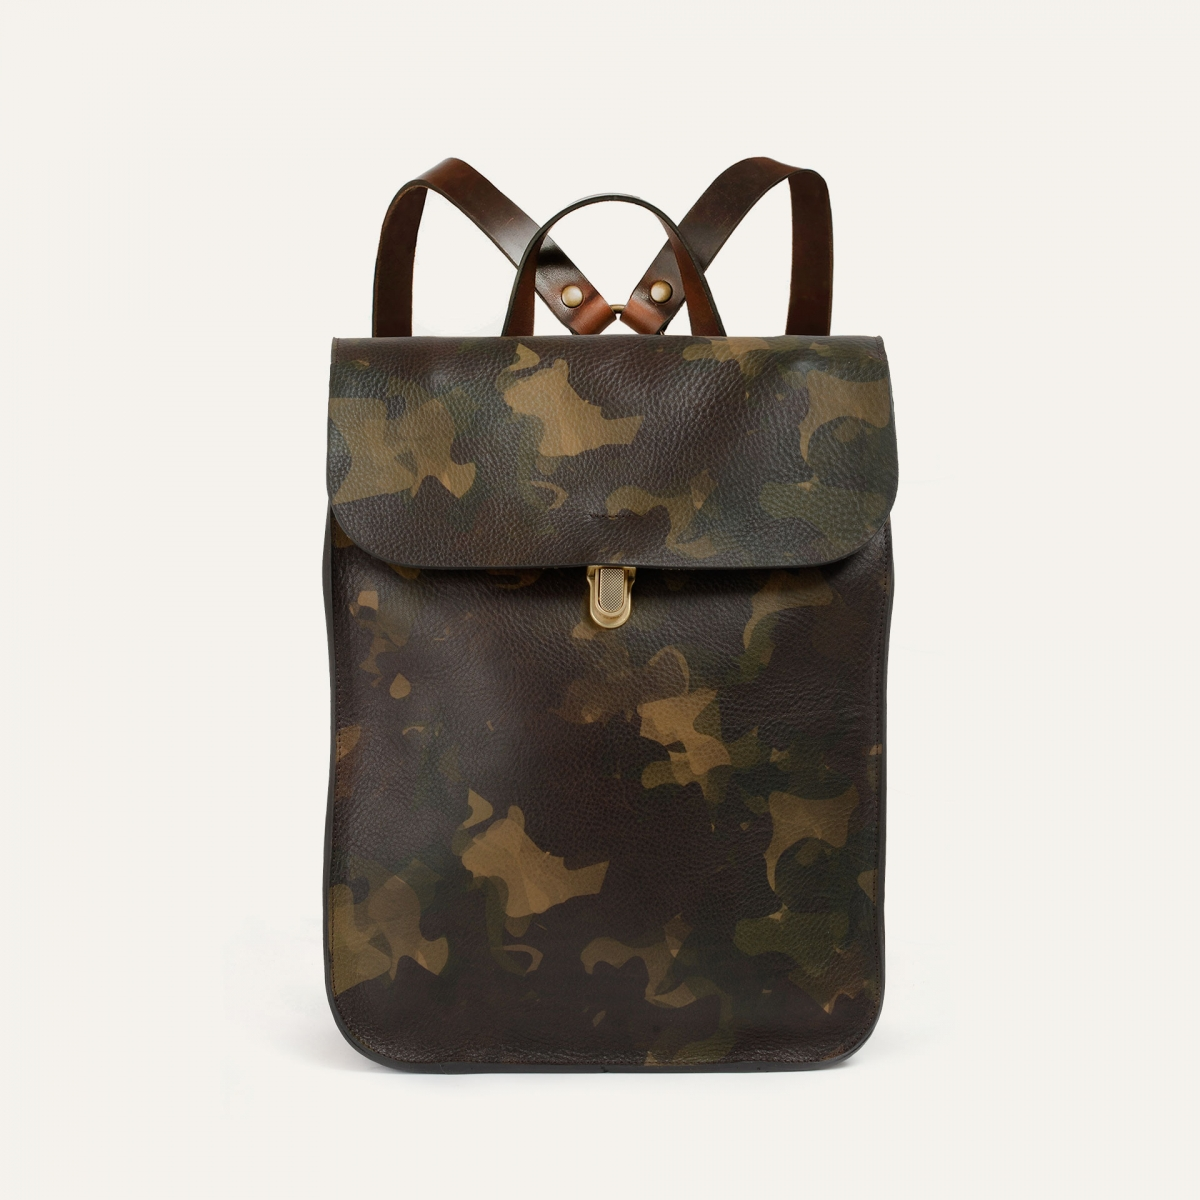 Puncho leather backpack - Camo (image n°1)